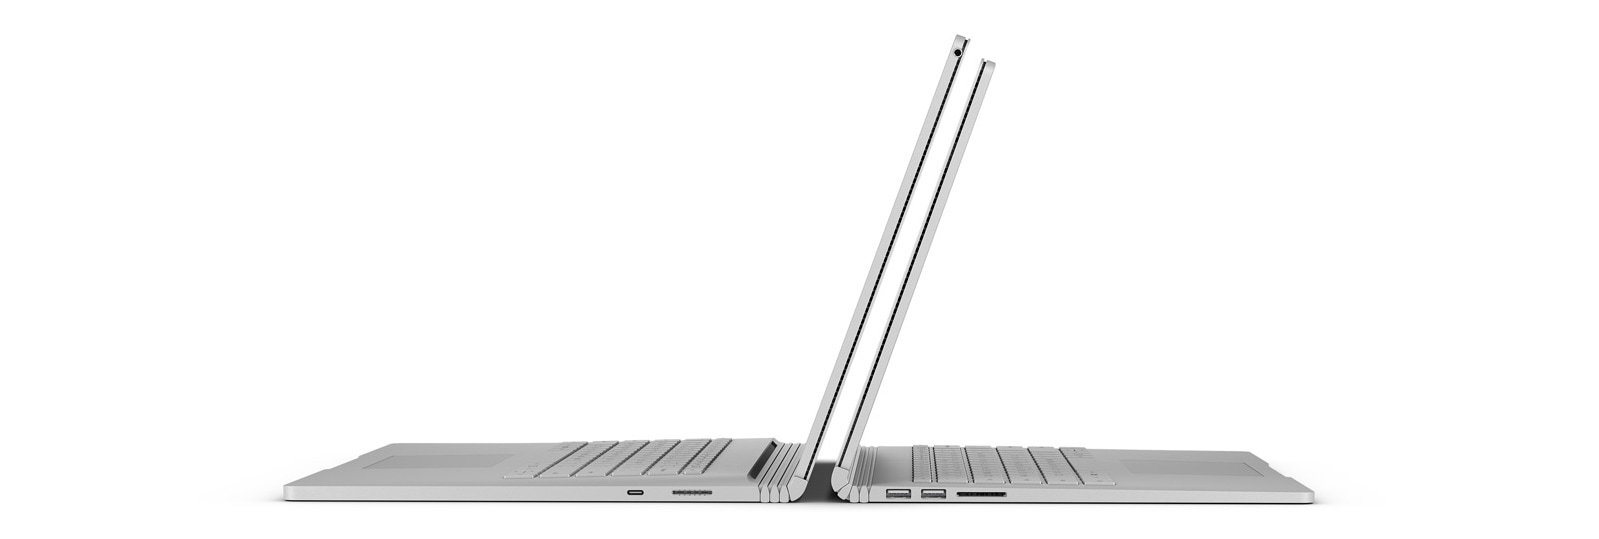 "Um Surface Book 2 de 13"" e um Surface Book de 15"" virados de costas"